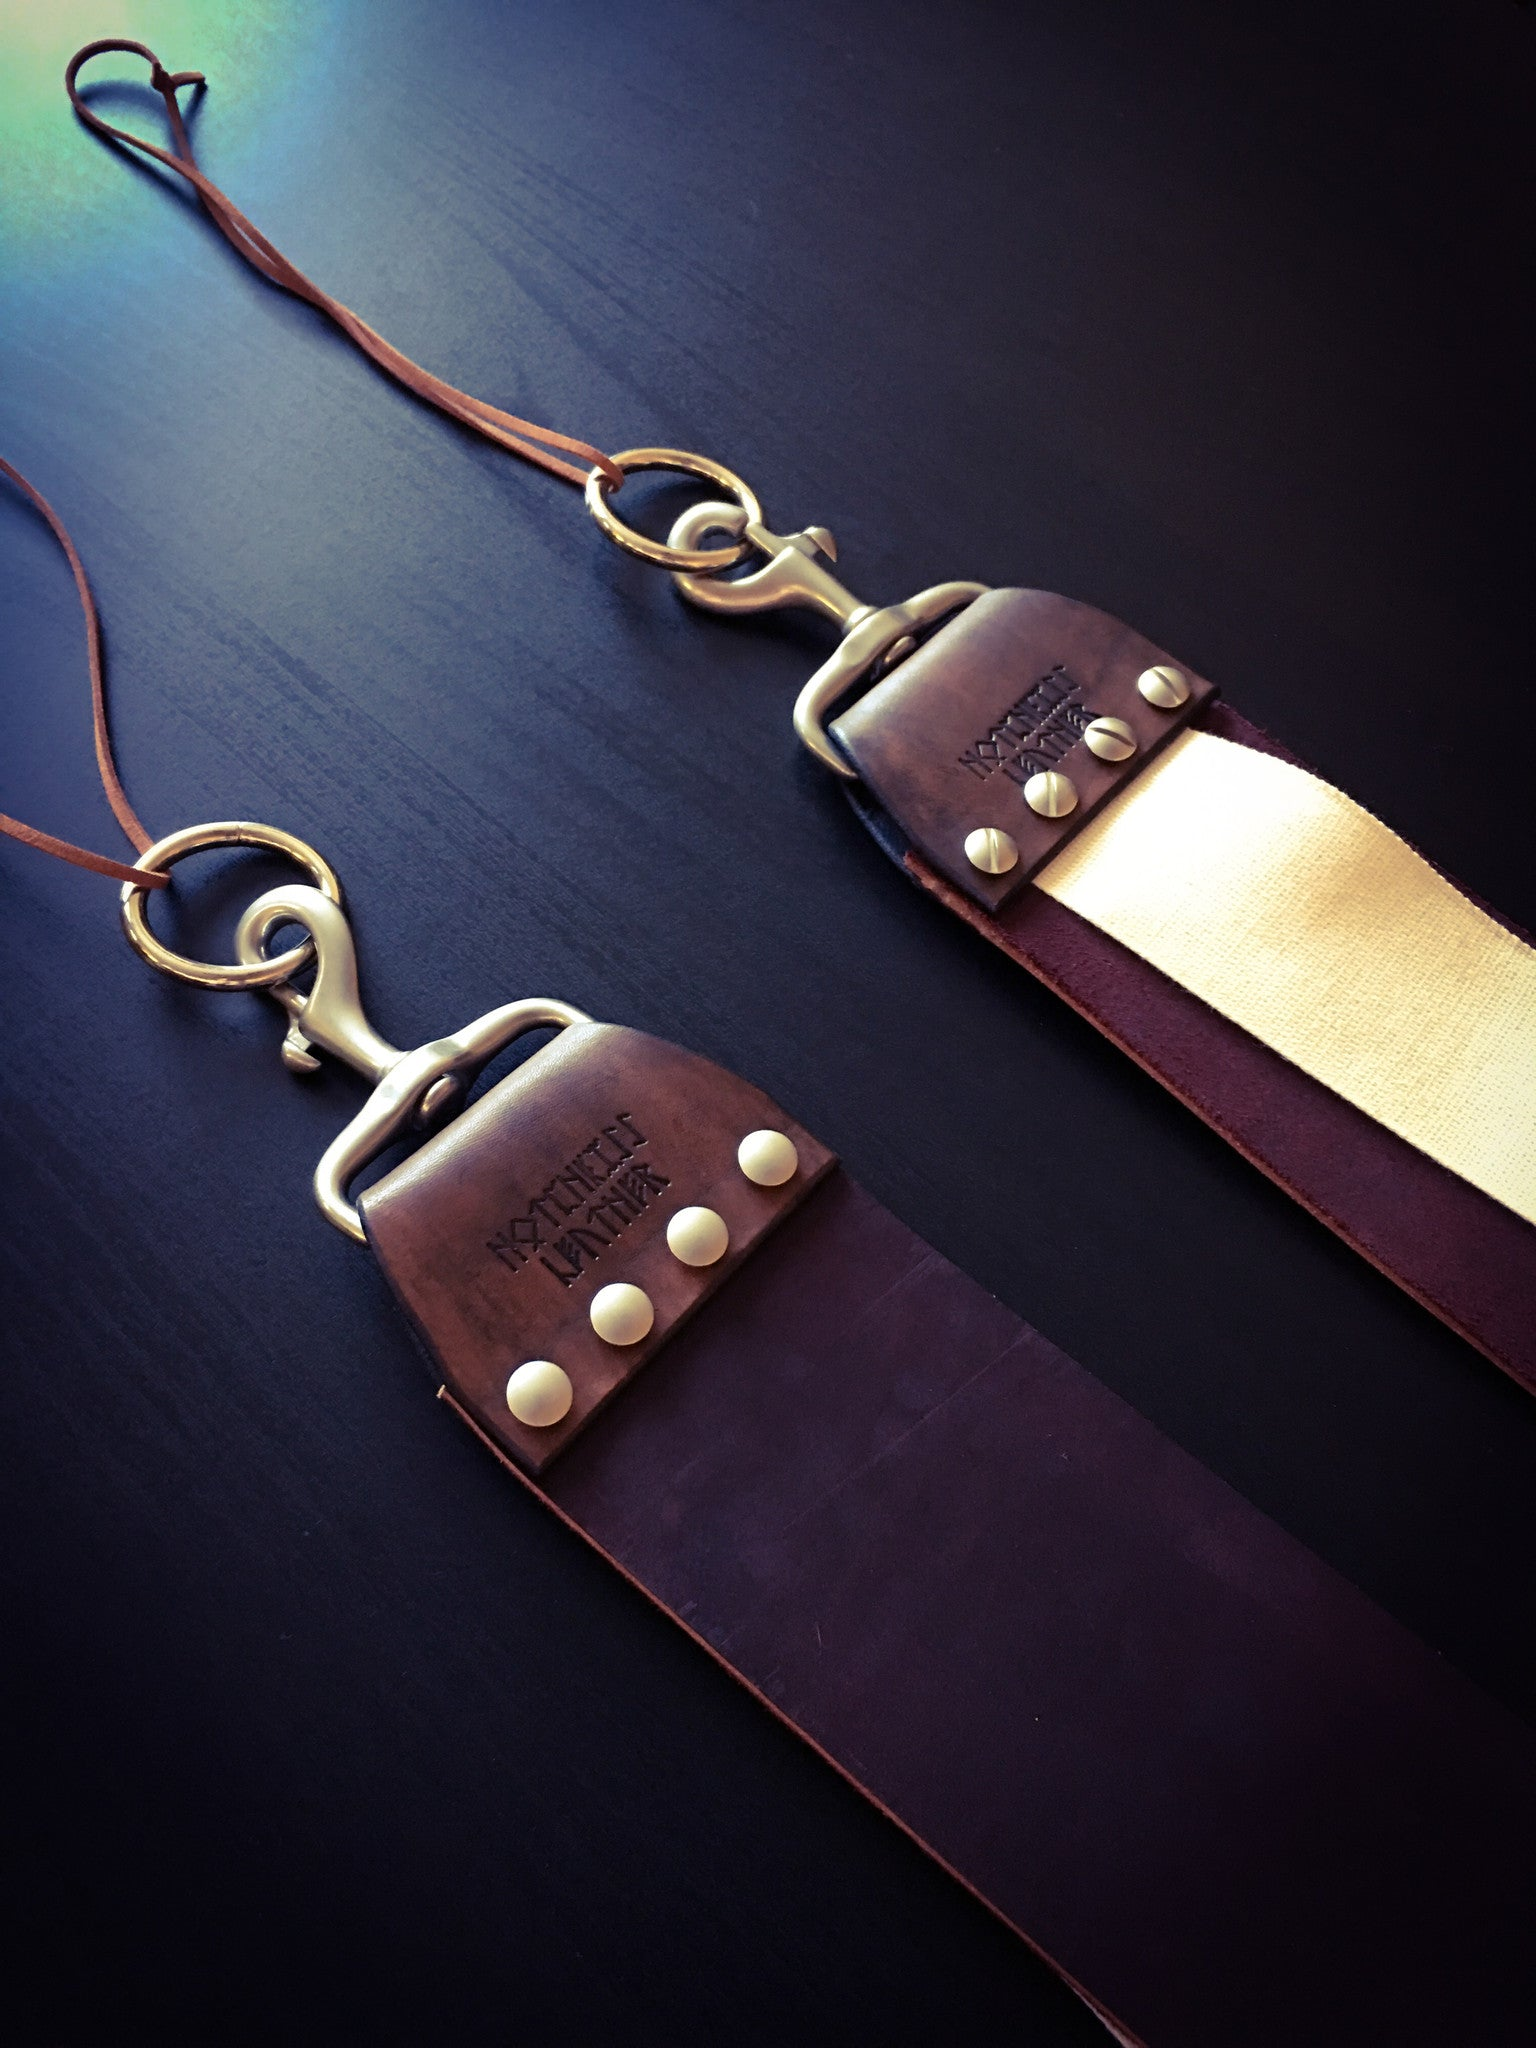 Linen and Latigo Leather Razor and Knife Strop - custom leather